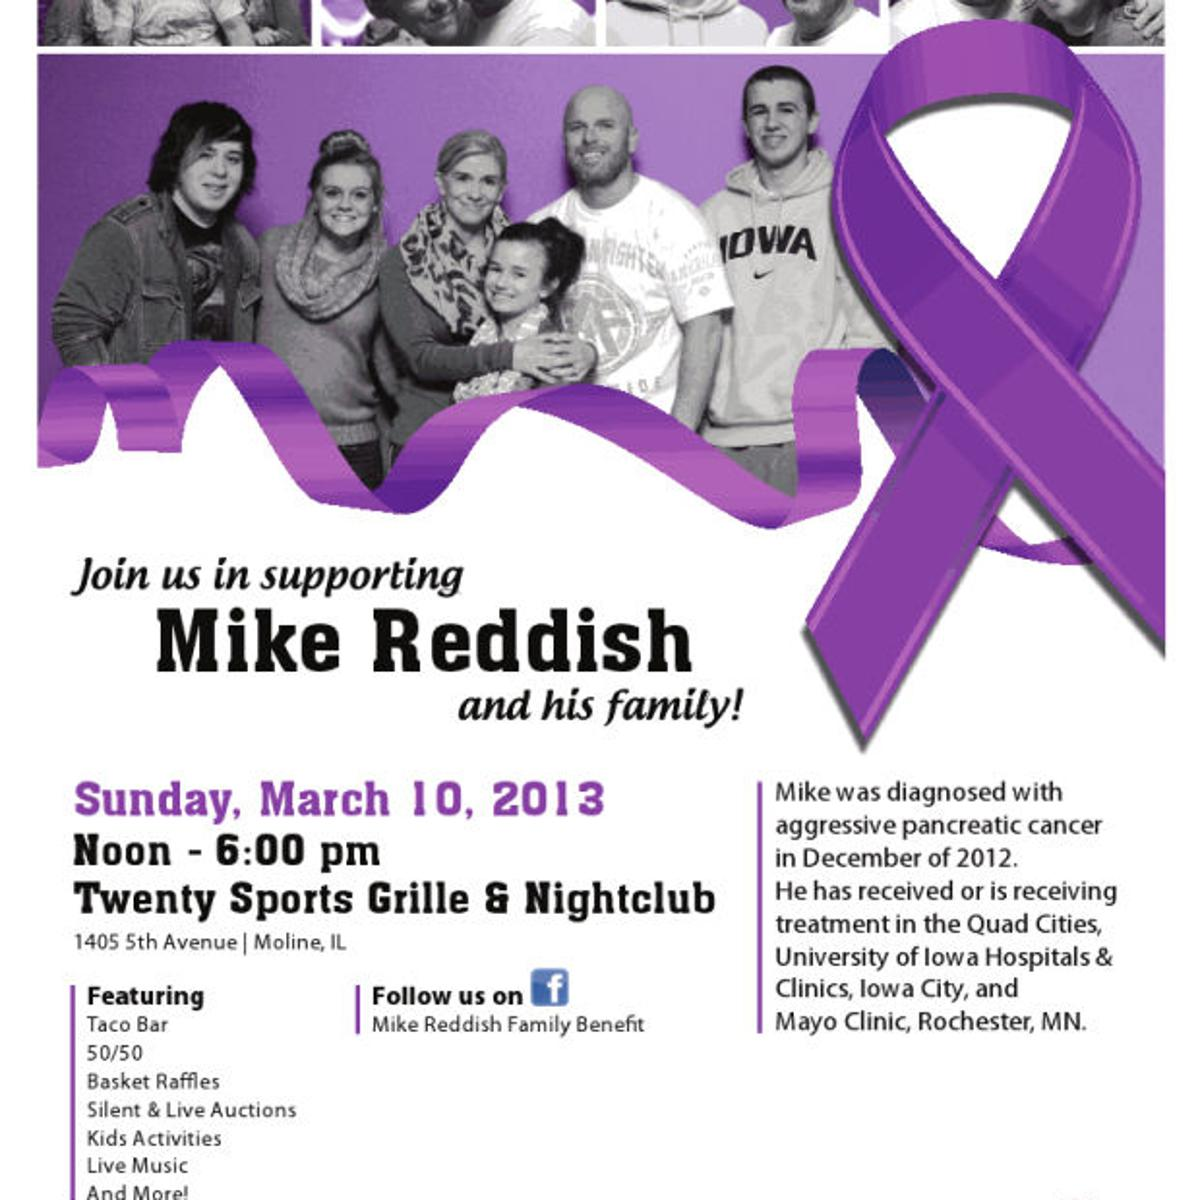 Battling pancreatic cancer, Reddish vows to be one of the